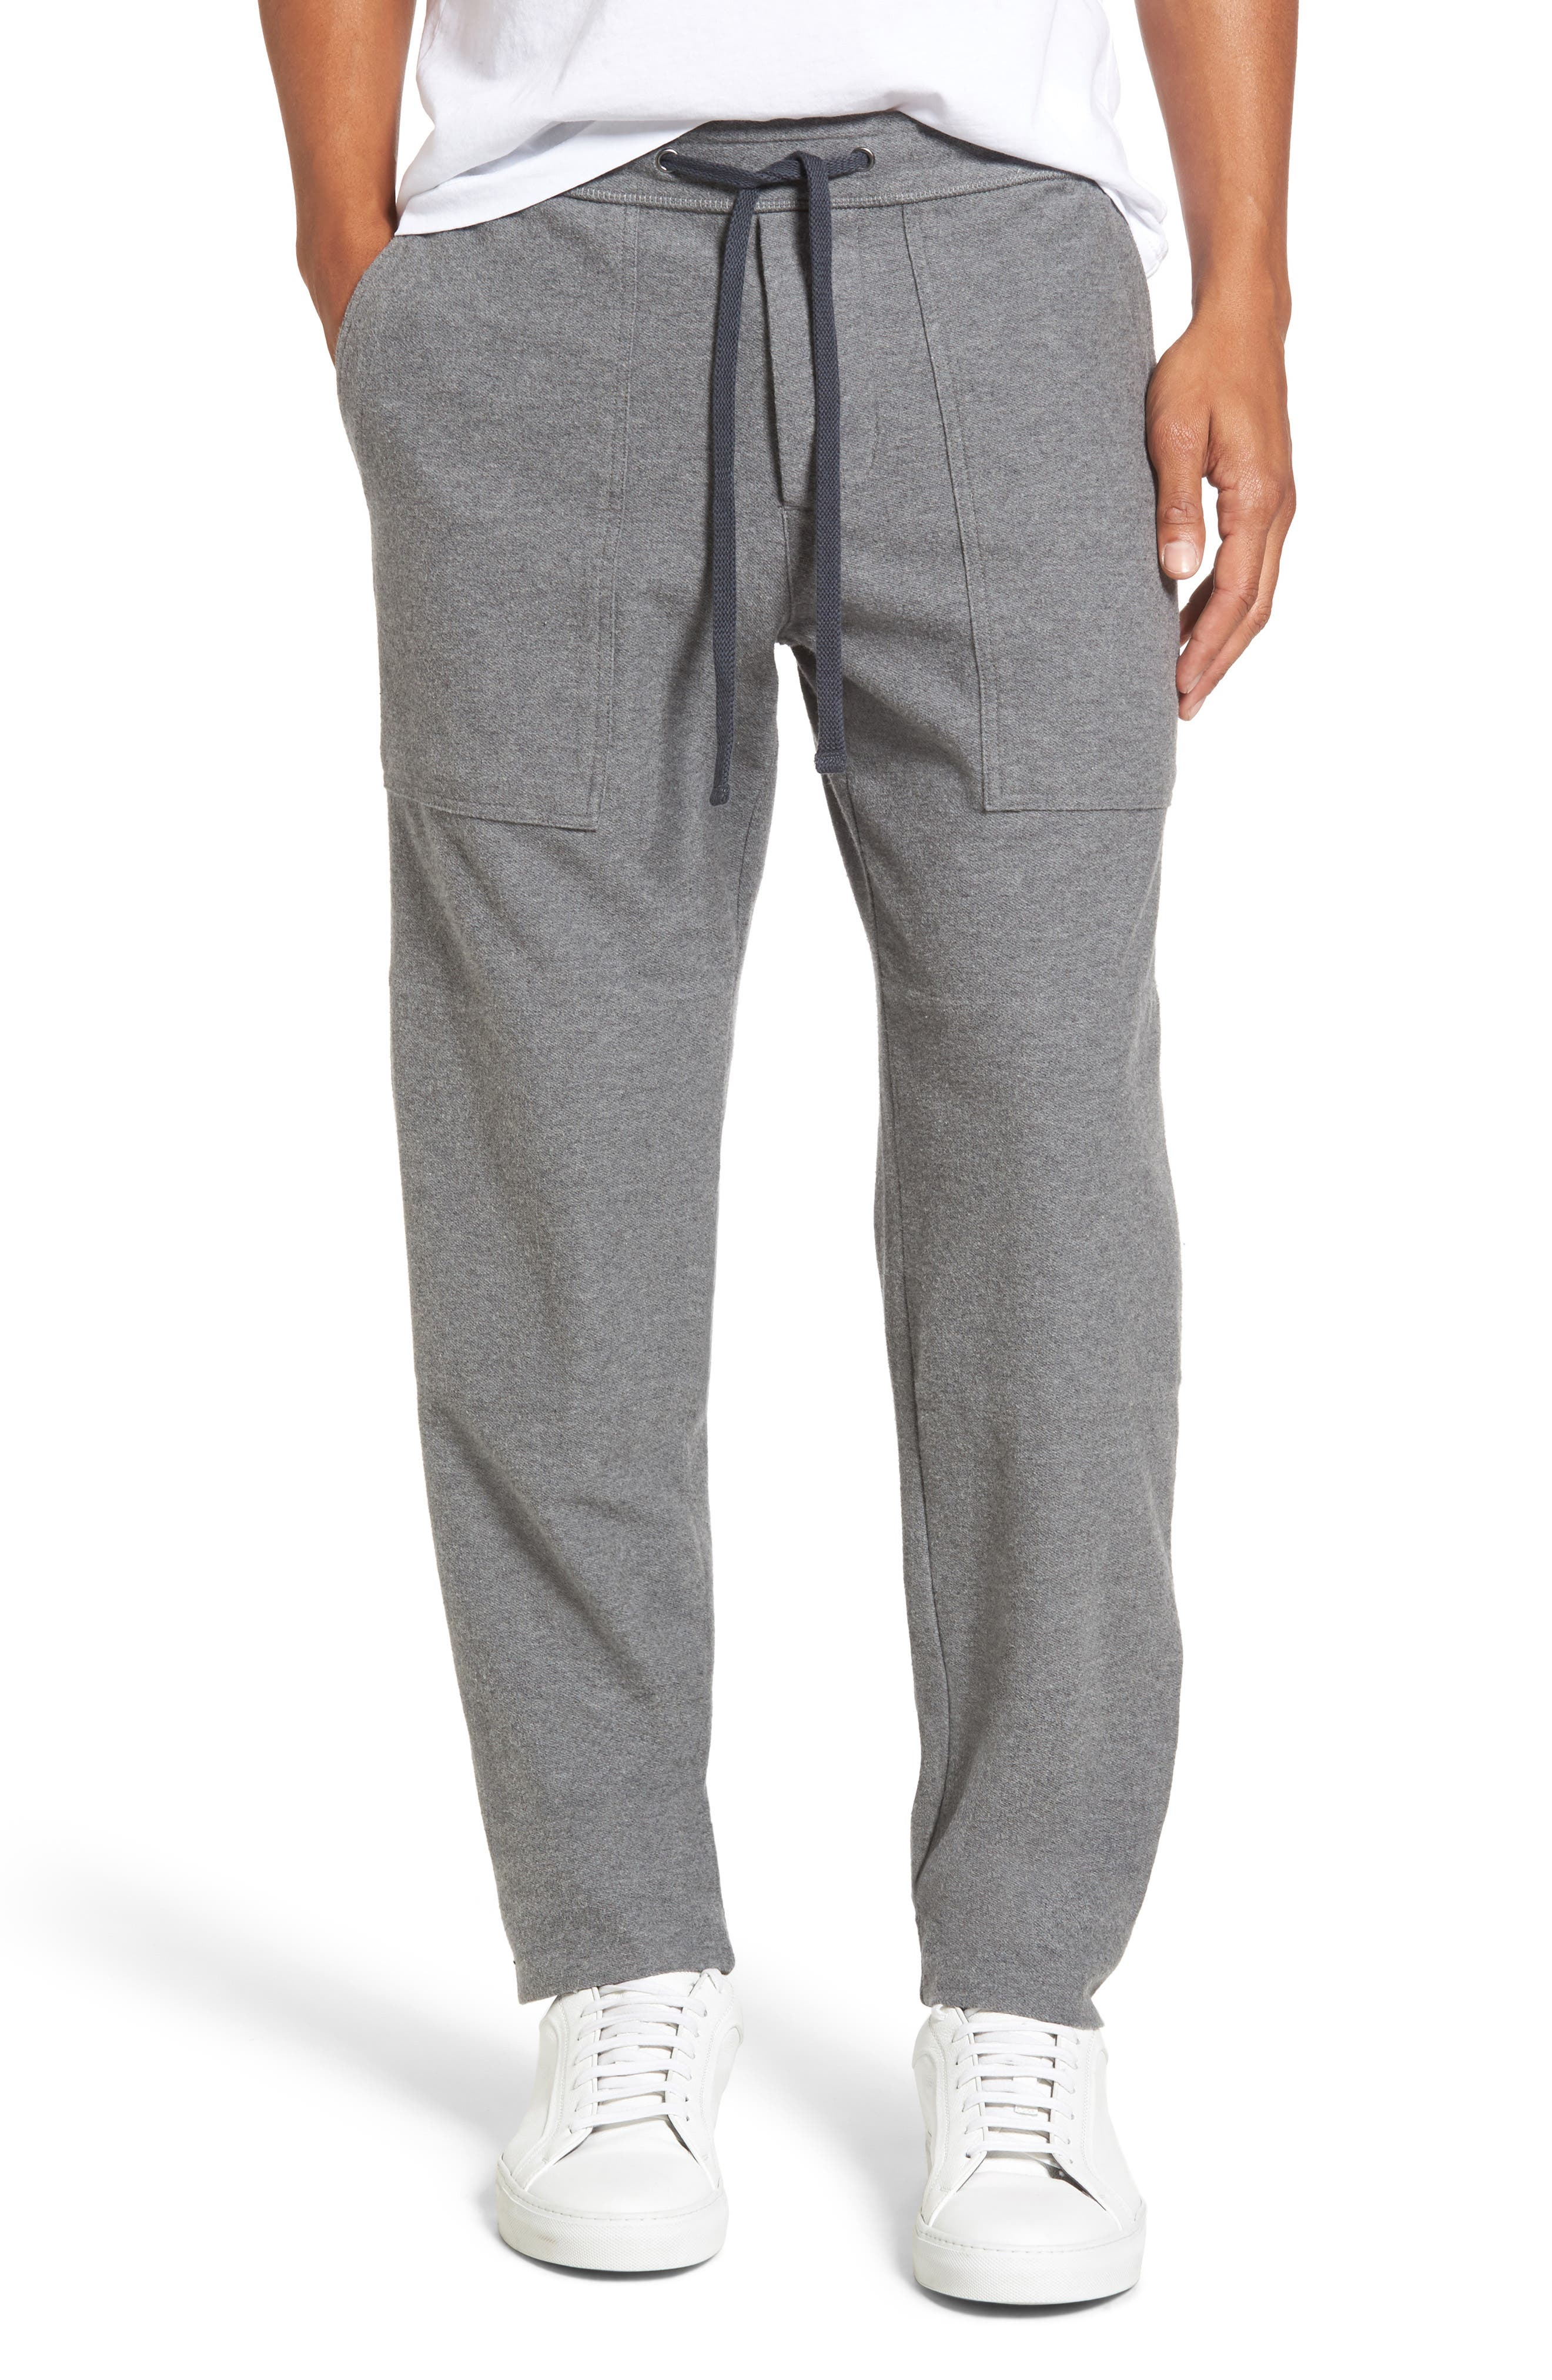 Heathered Knit Lounge Pants,                         Main,                         color, Heather Grey